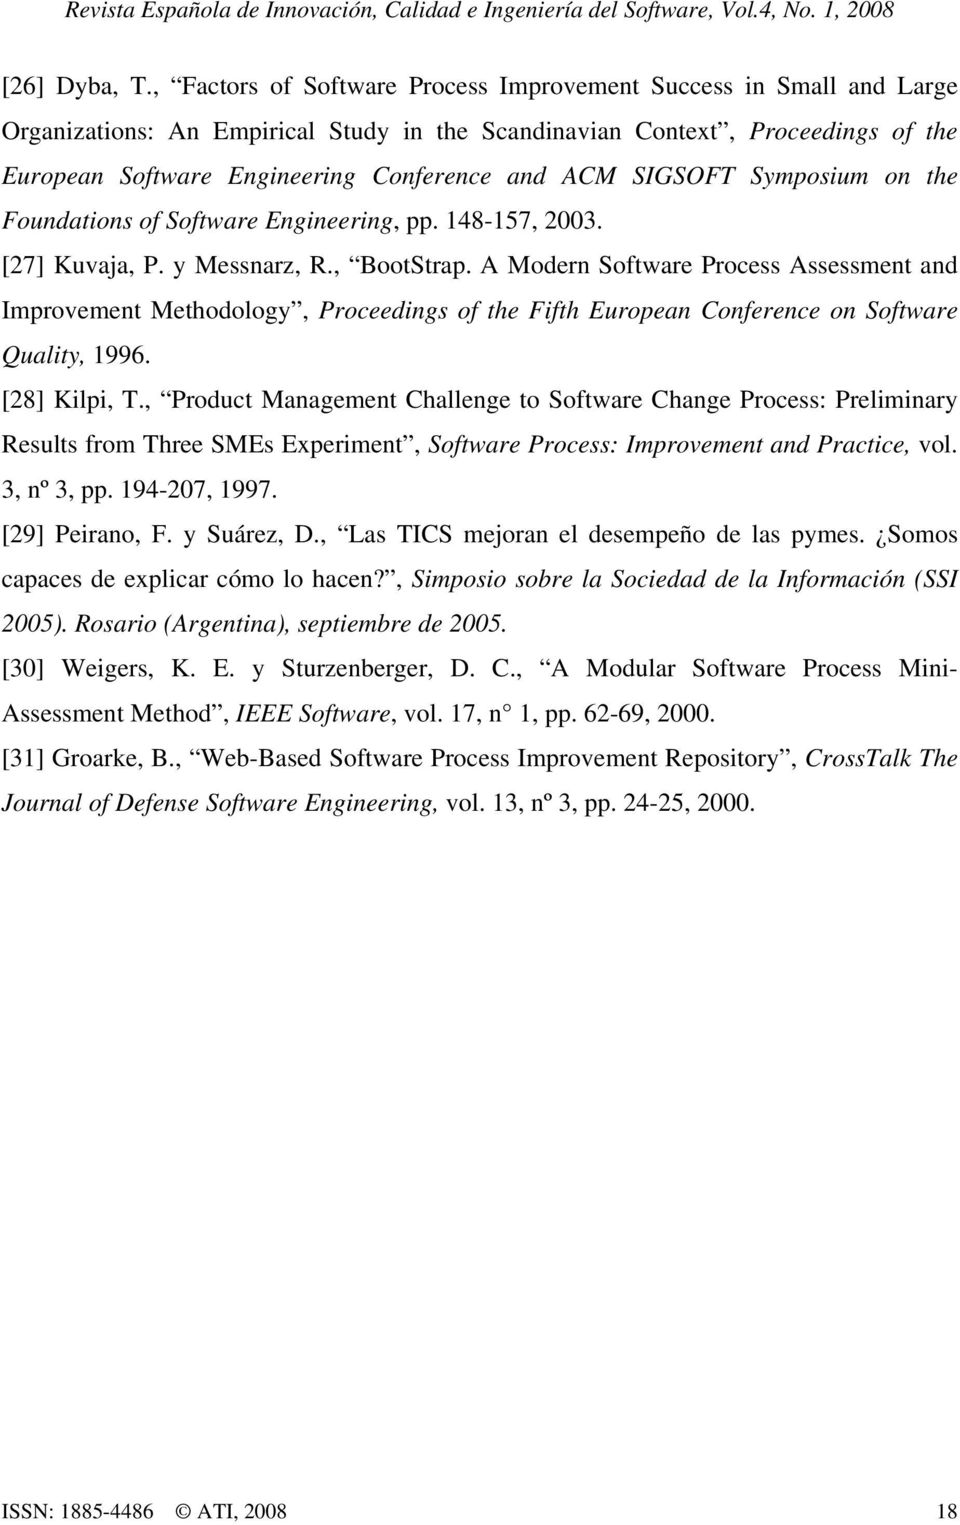 SIGSOFT Symposium on the Foundations of Software Engineering, pp. 148-157, 2003. [27] Kuvaja, P. y Messnarz, R., BootStrap.